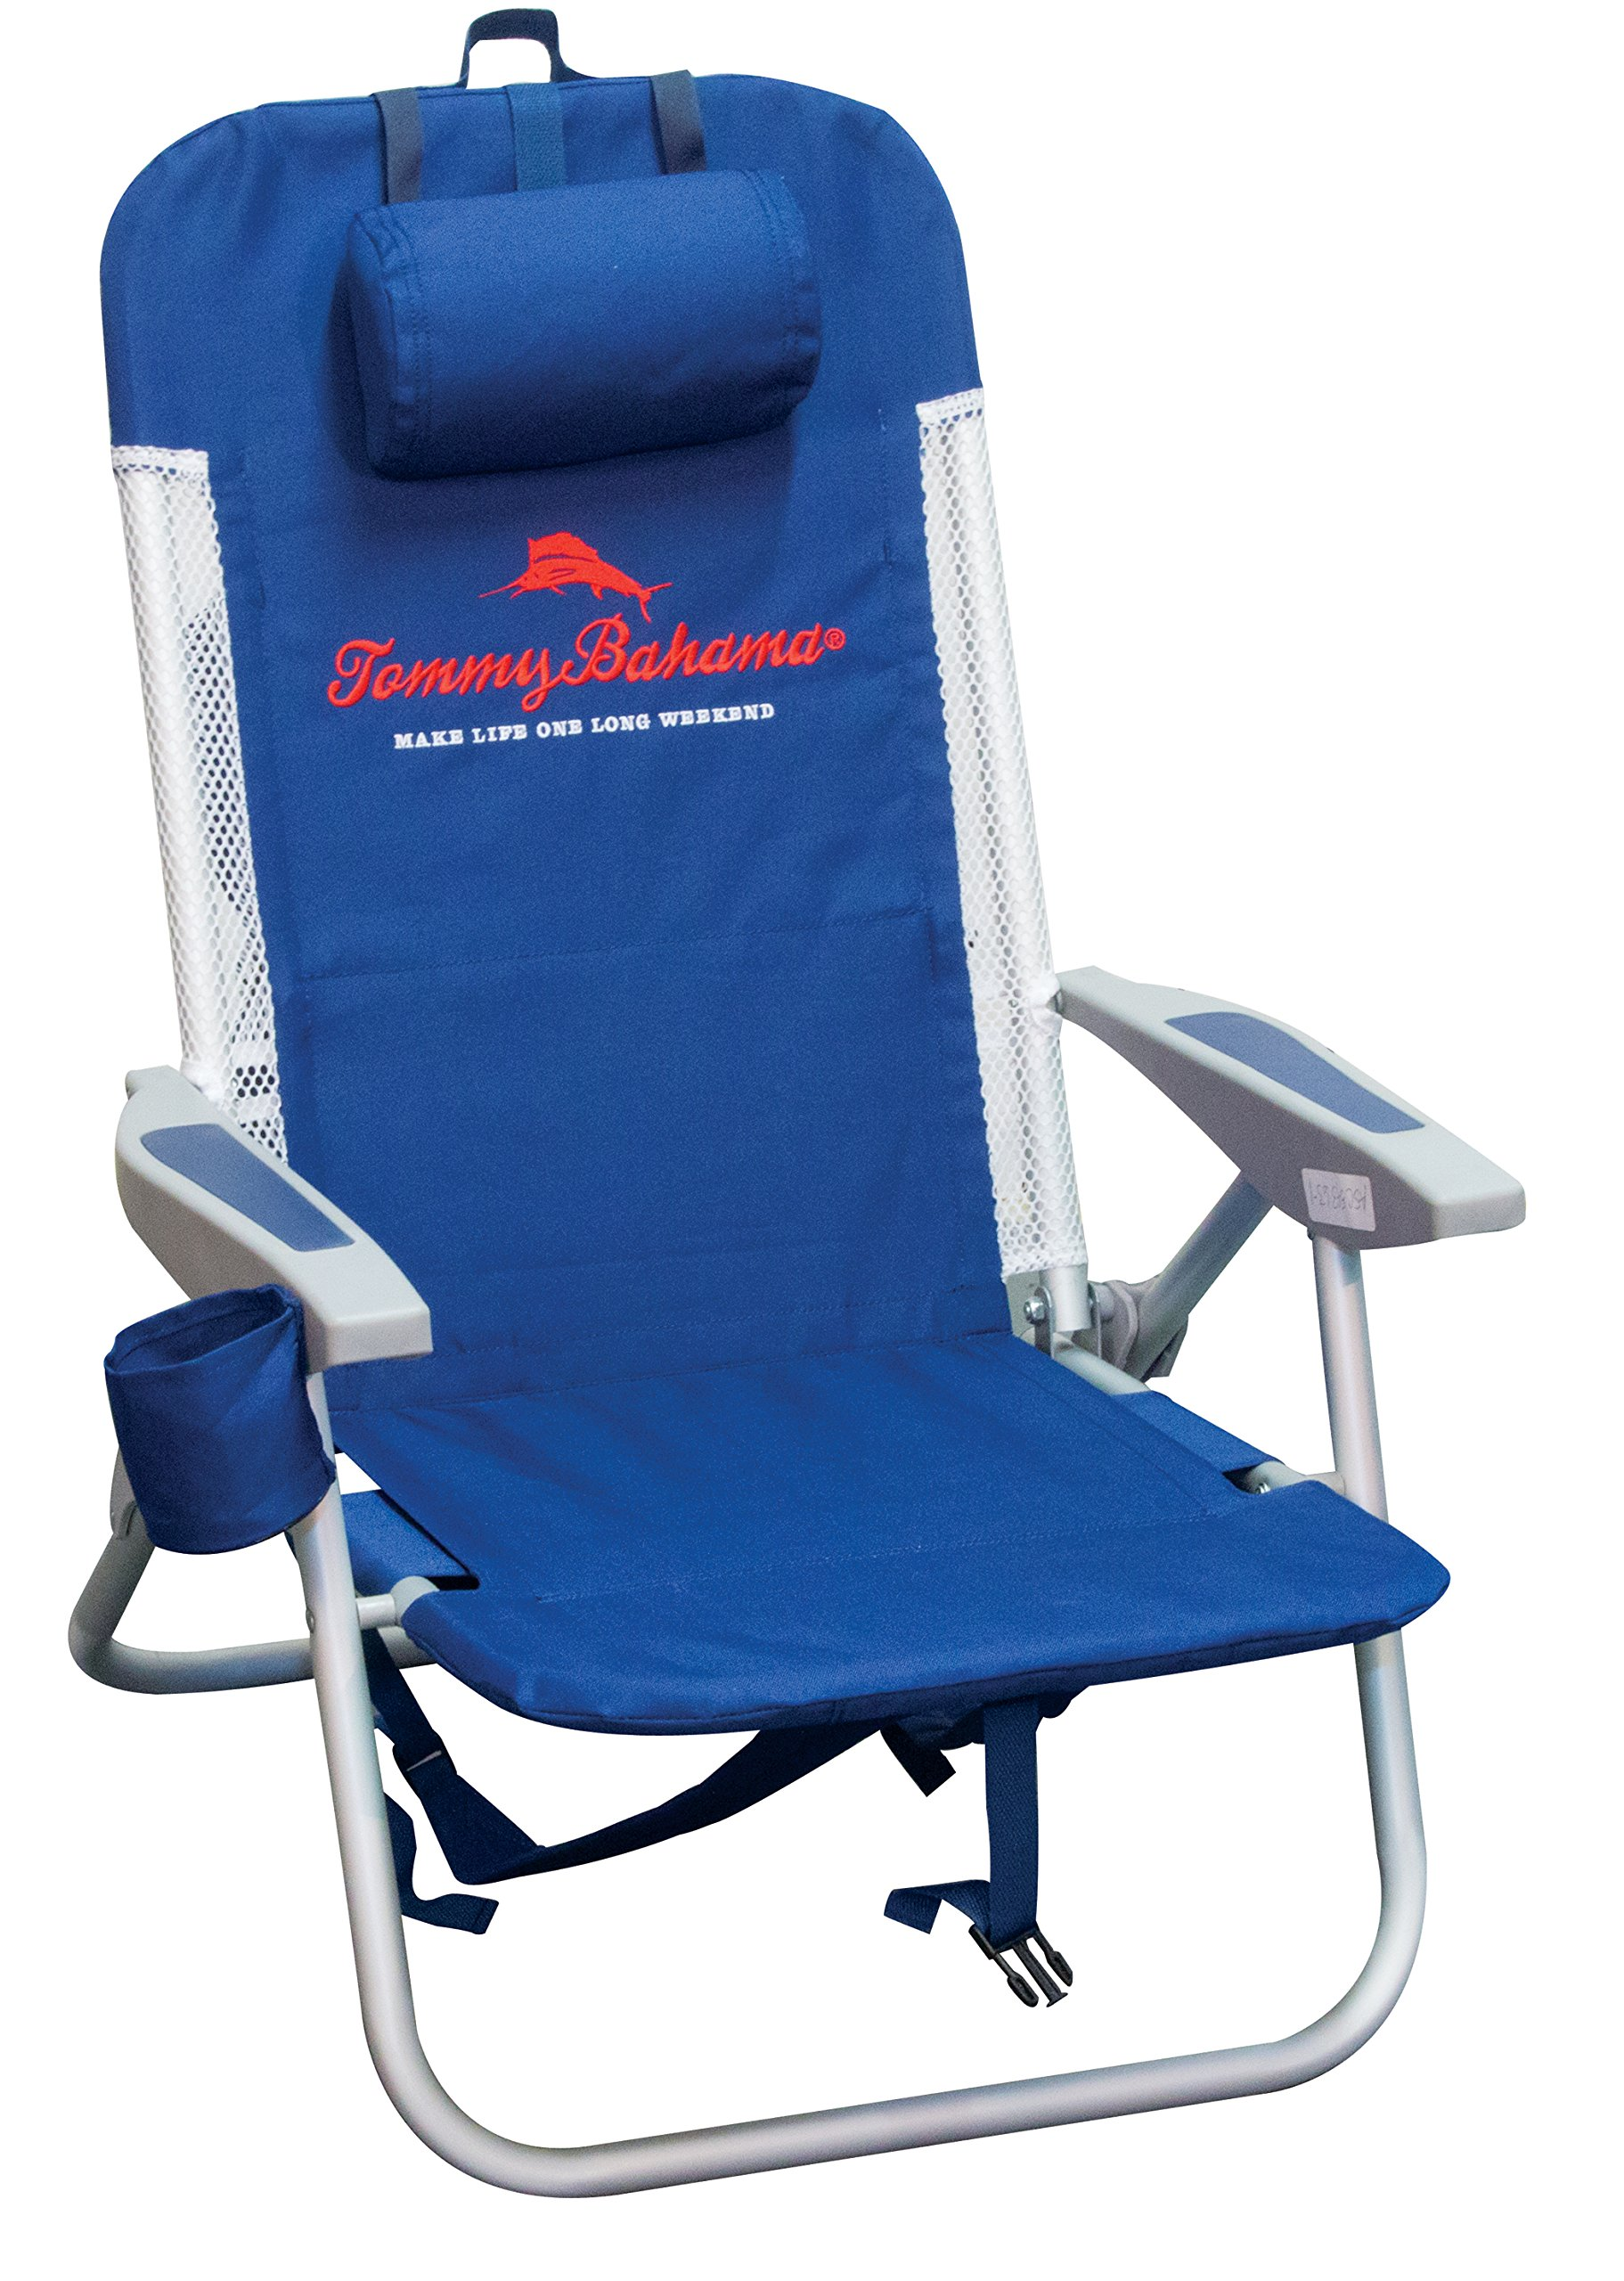 Galleon Tommy Bahama Mesh Trim With Cooler Backpack Chair